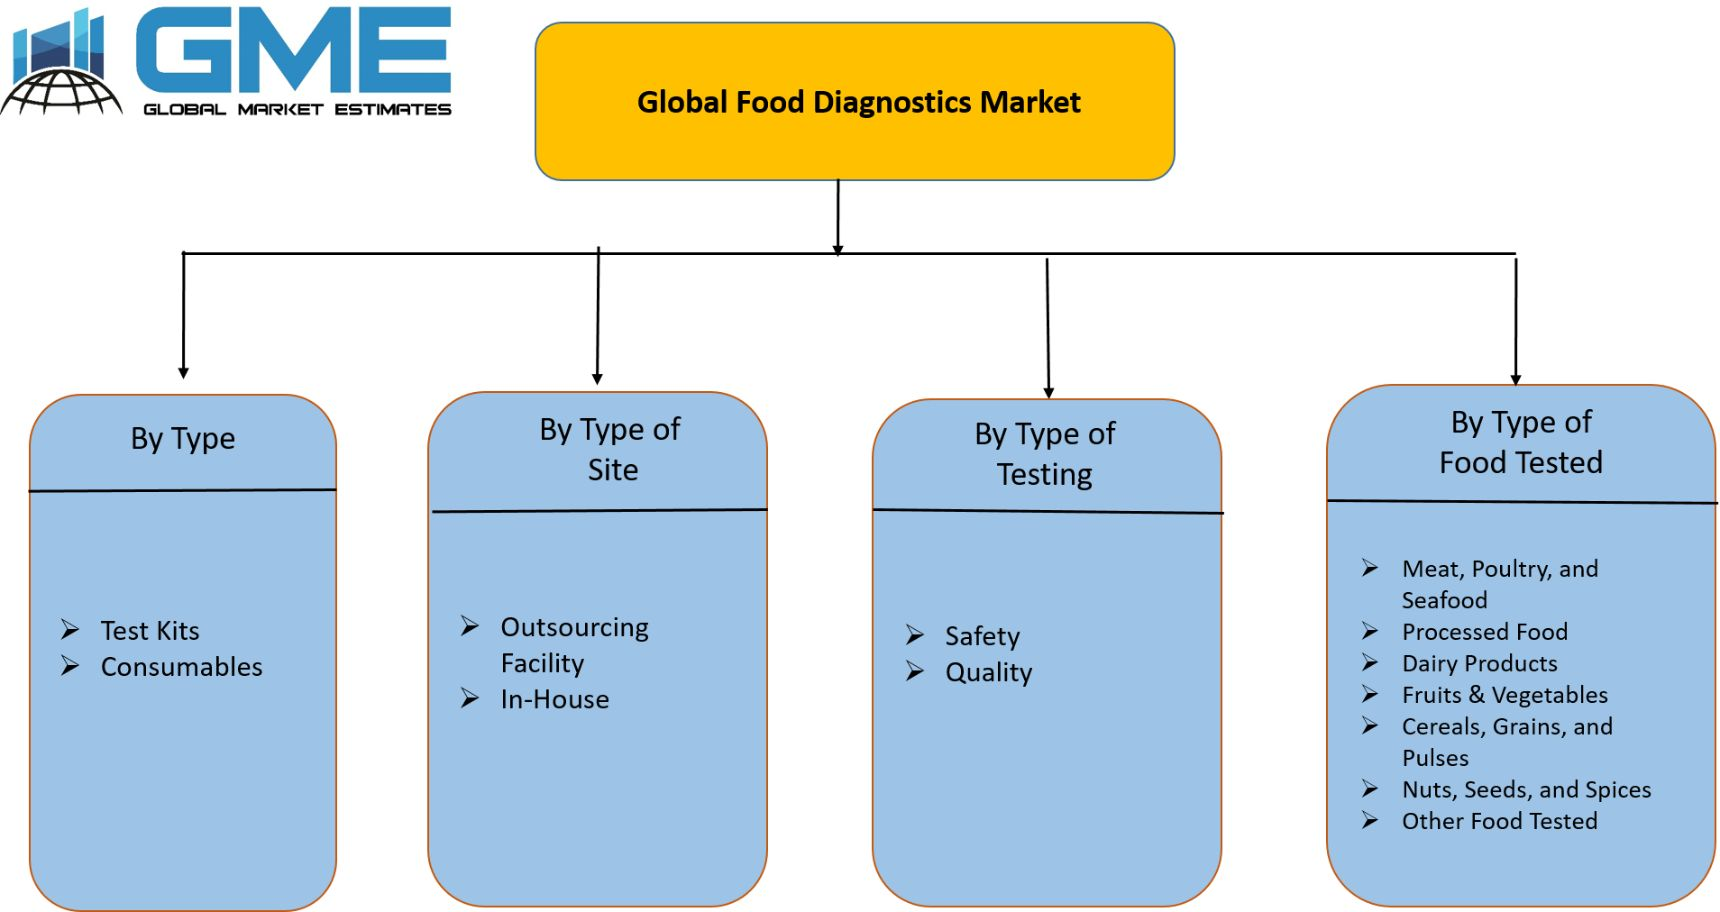 Global Food Diagnostics Market Segmentation